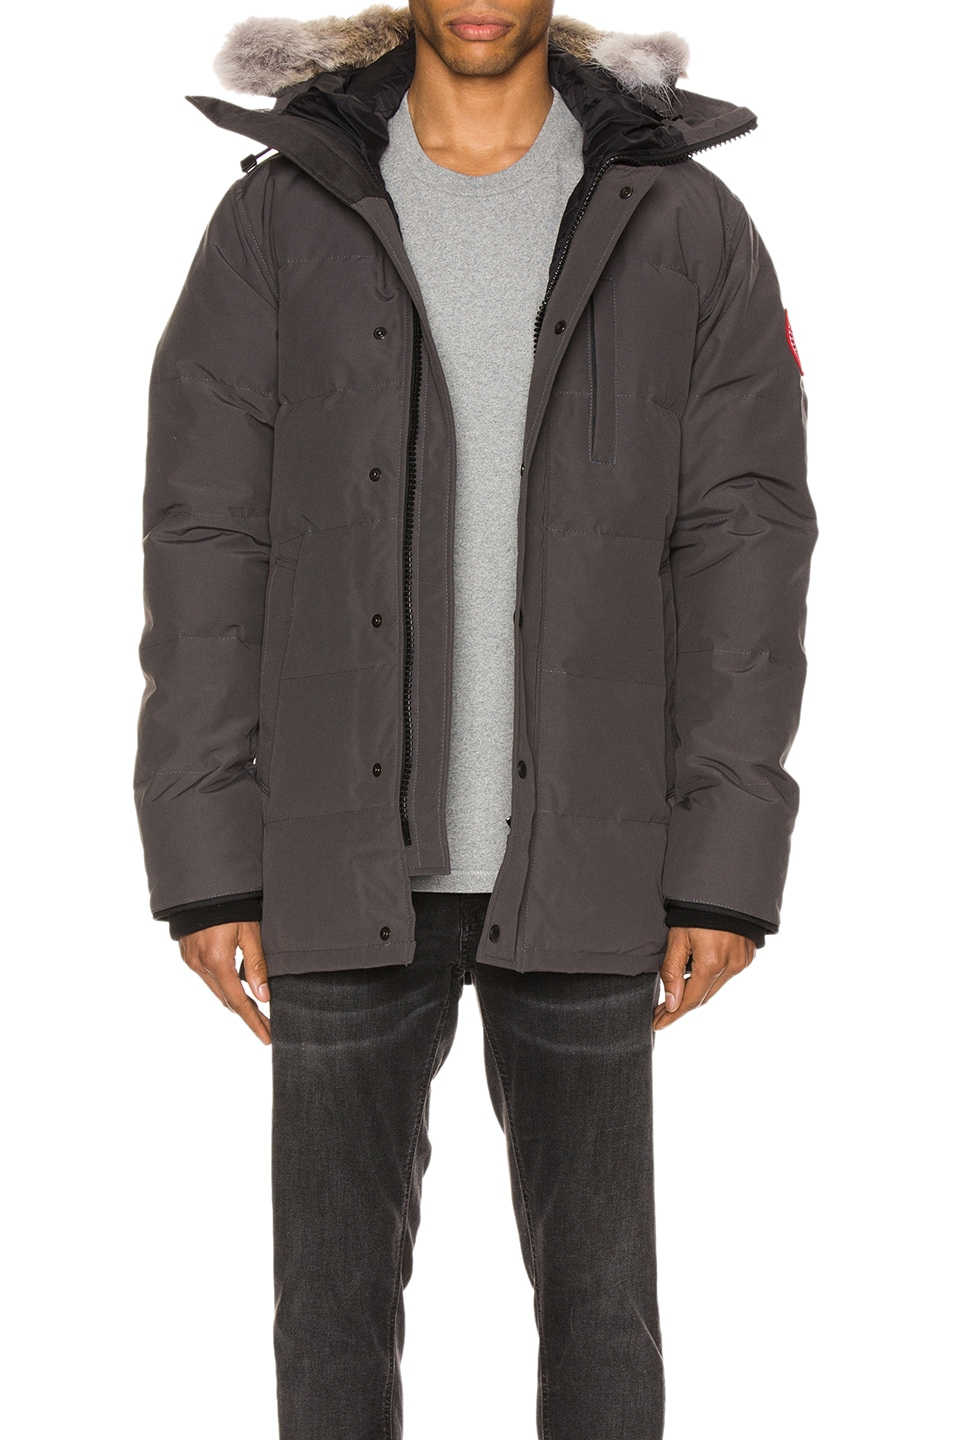 Image 1 of Canada Goose Carson Parka in Graphite